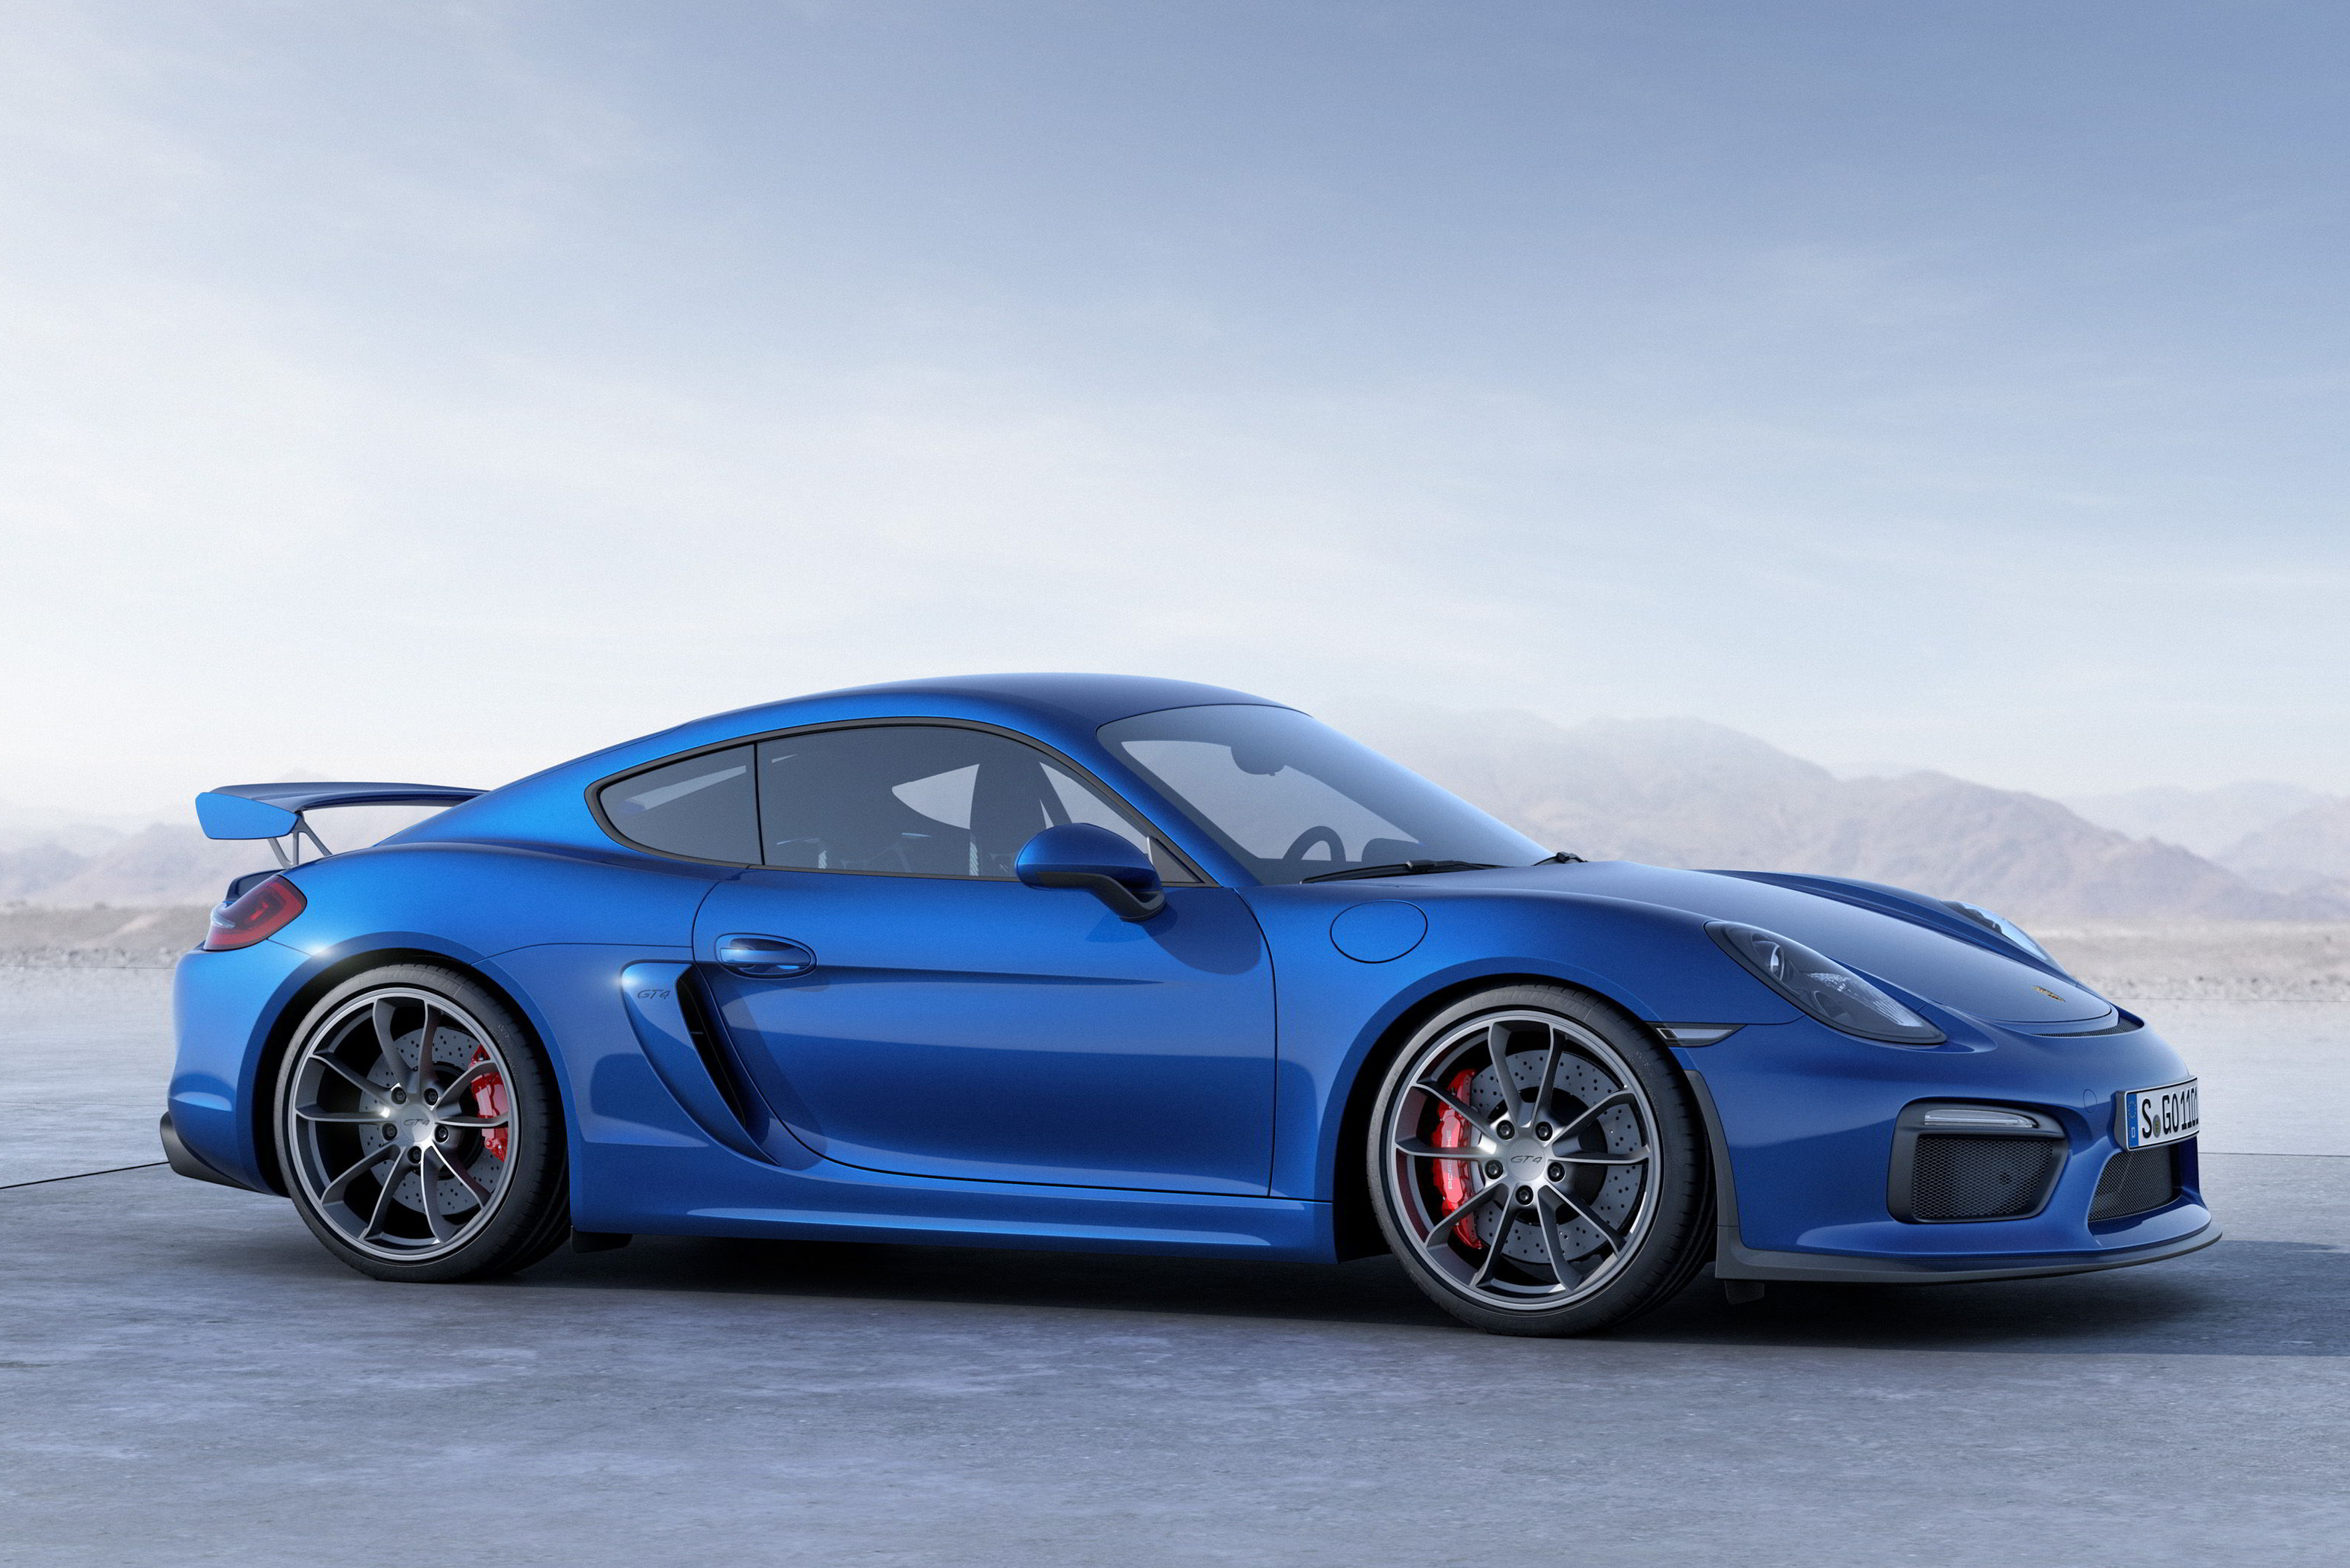 2016 porsche cayman gt4 dr ing h c f porsche ag carrrs auto portal. Black Bedroom Furniture Sets. Home Design Ideas